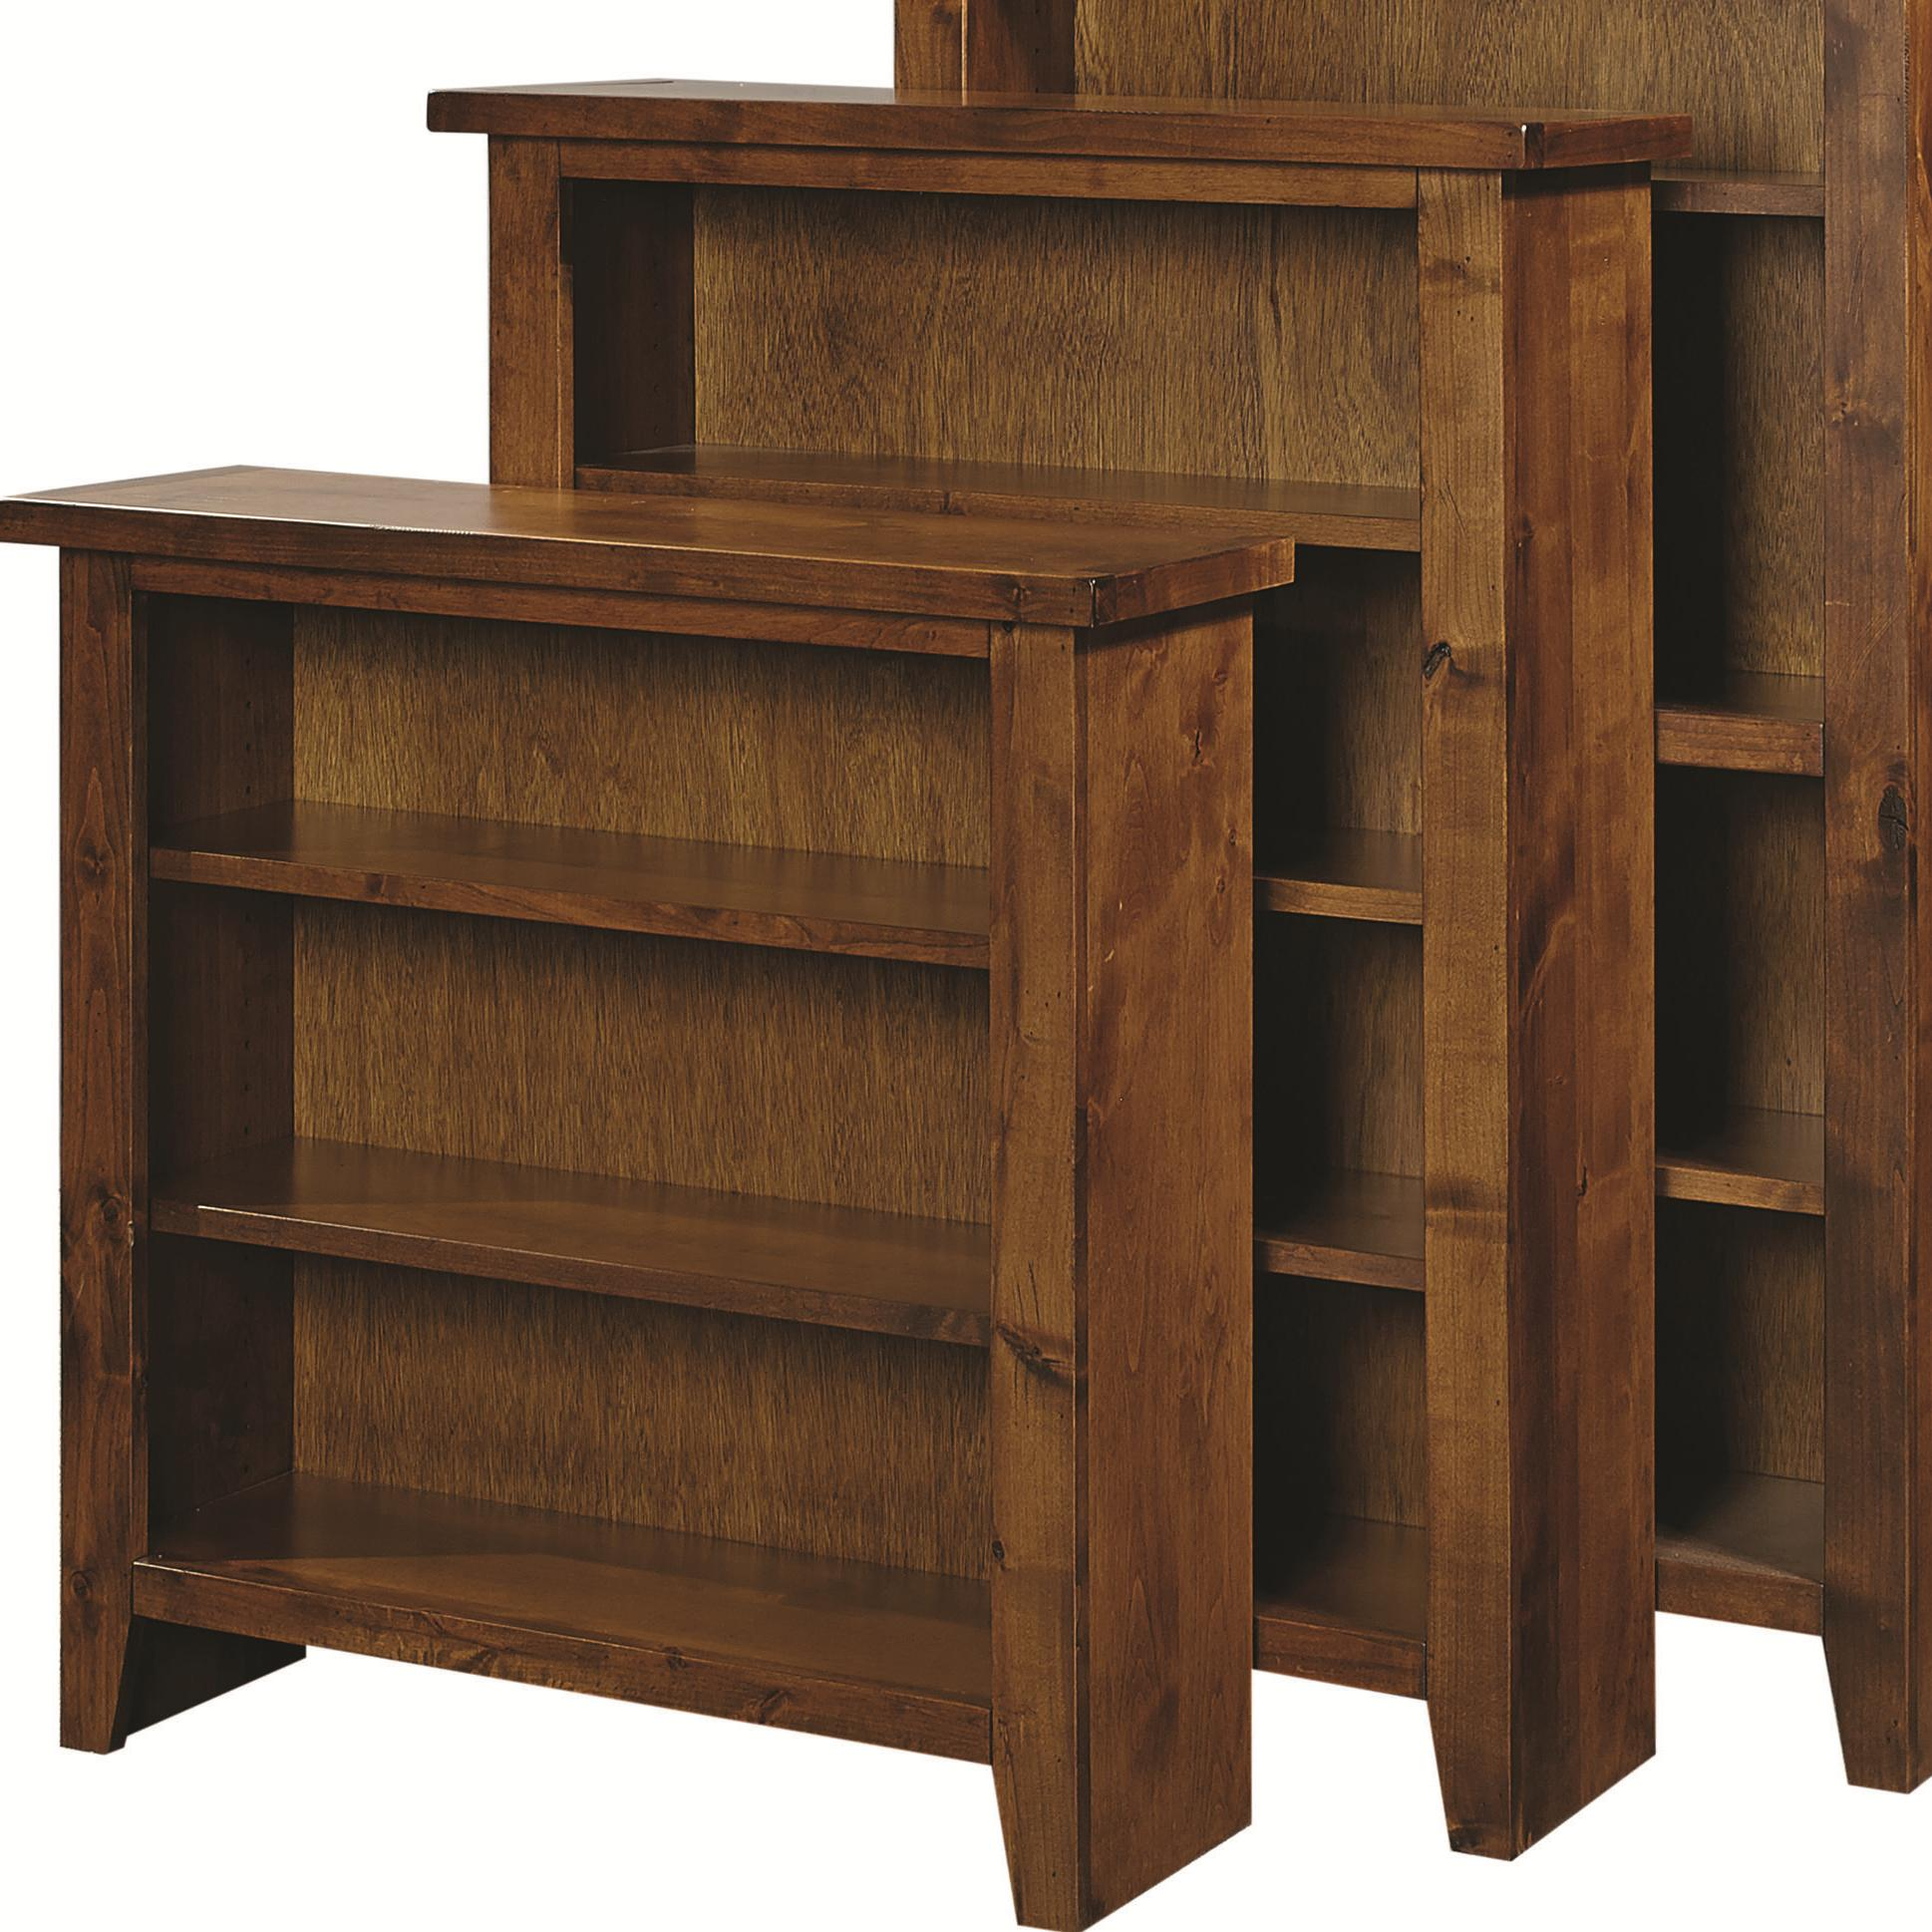 "Alder Grove Bookcase 48"" Height with 3 Shelves by Hills of Aspen at Ruby Gordon Home"